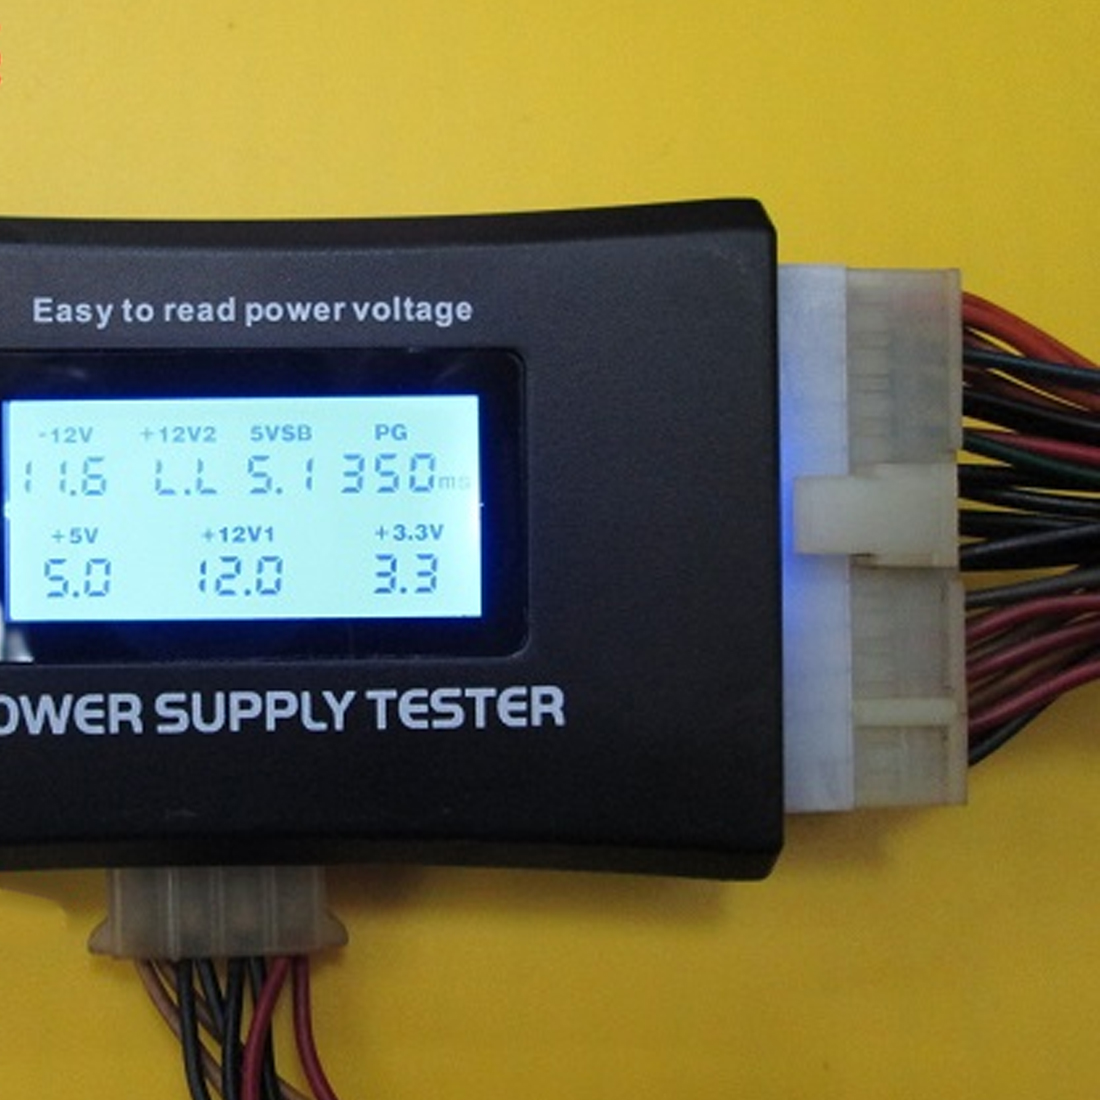 LCD Digital Display PC Power Supply Tester Checker ATX Measuring Tester Tool